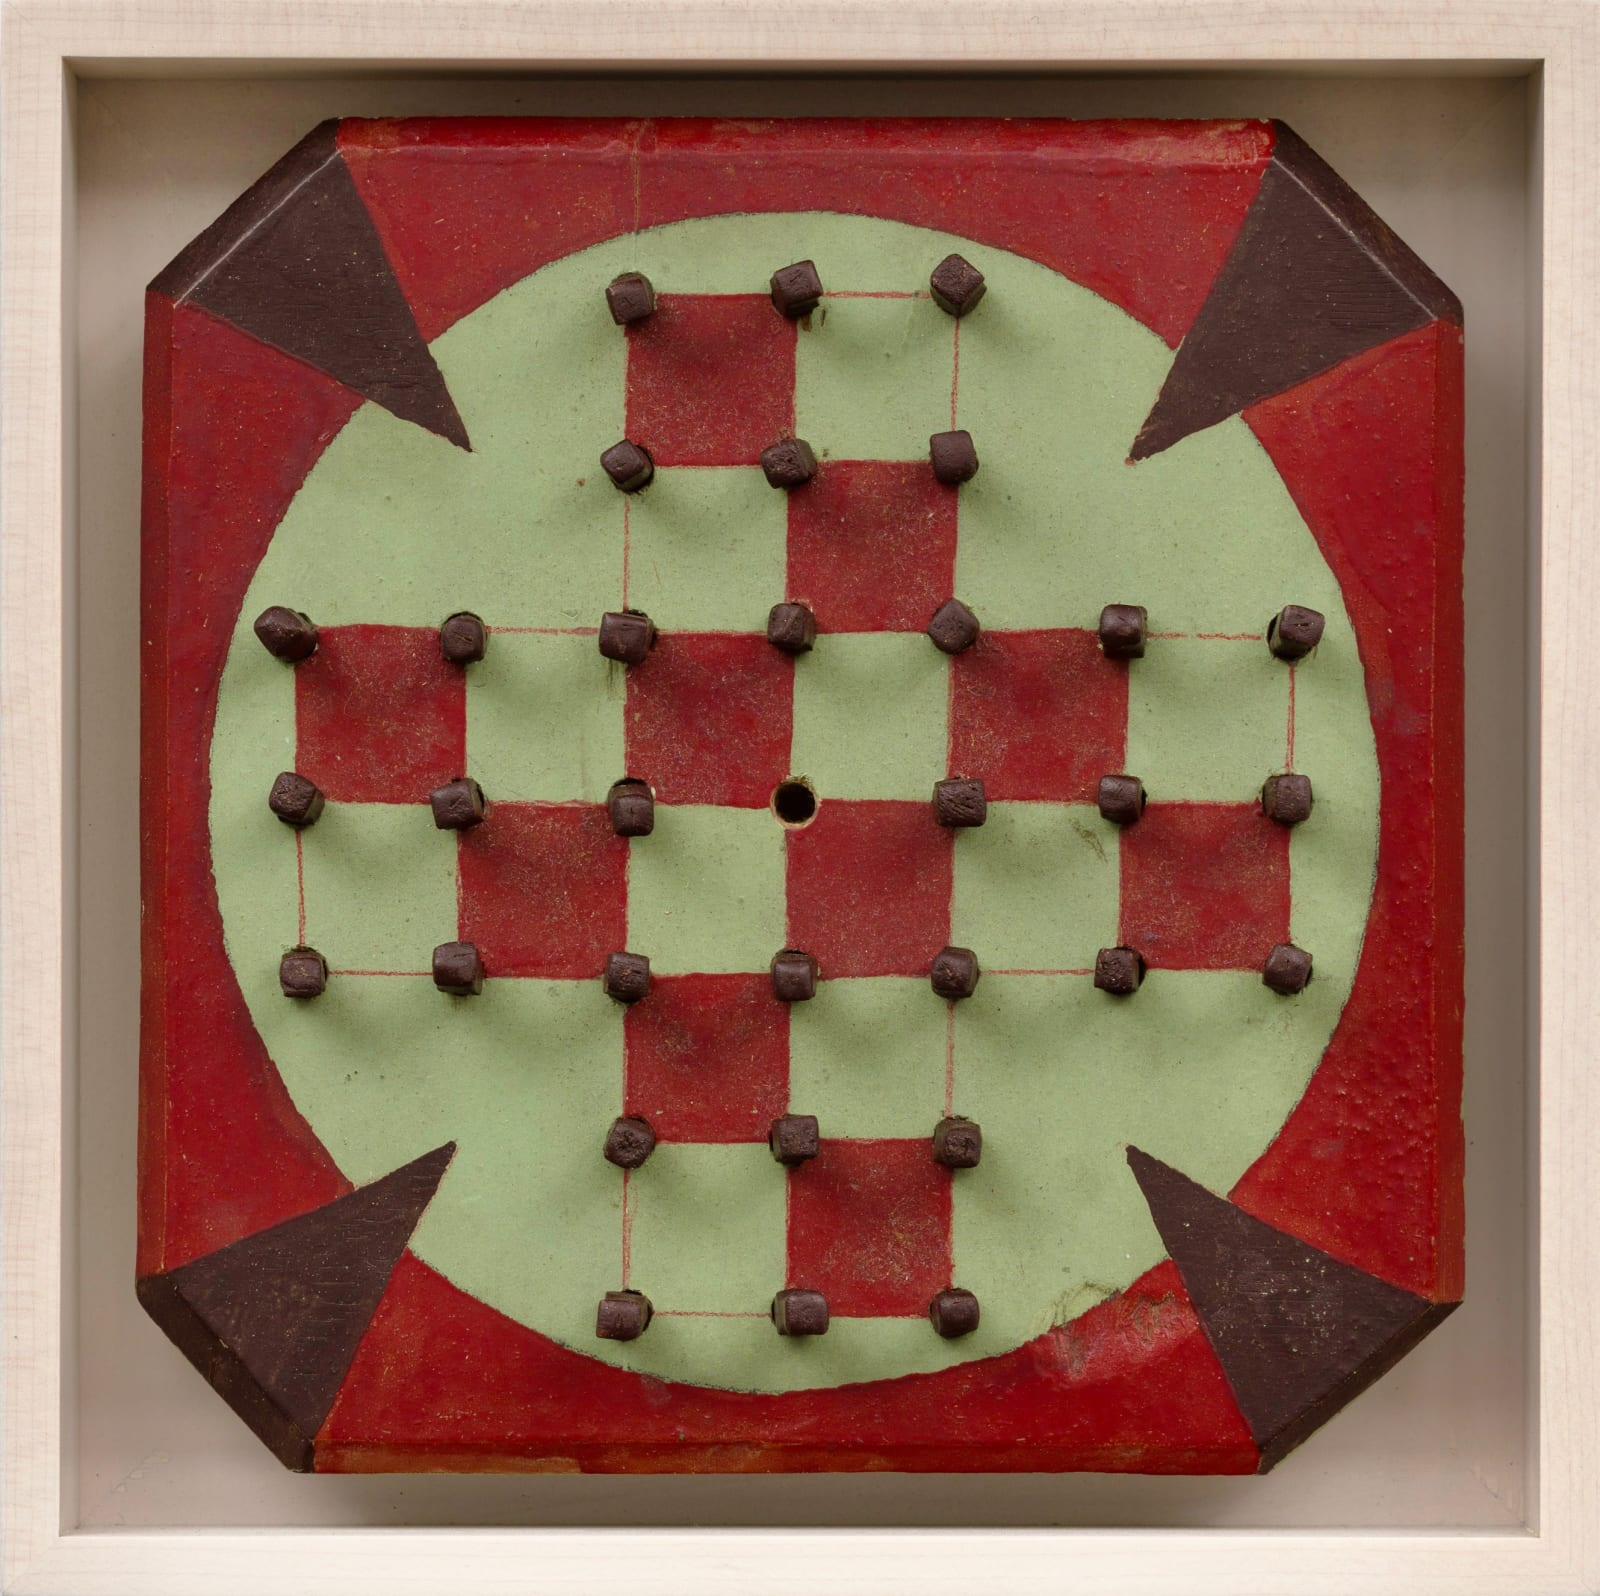 SOLITAIRE GAME BOARD WITH PEGS , C. 1950S 8 5/8 x 8 5/8 in. 21.9 x 21.9 cm. (AU 298)